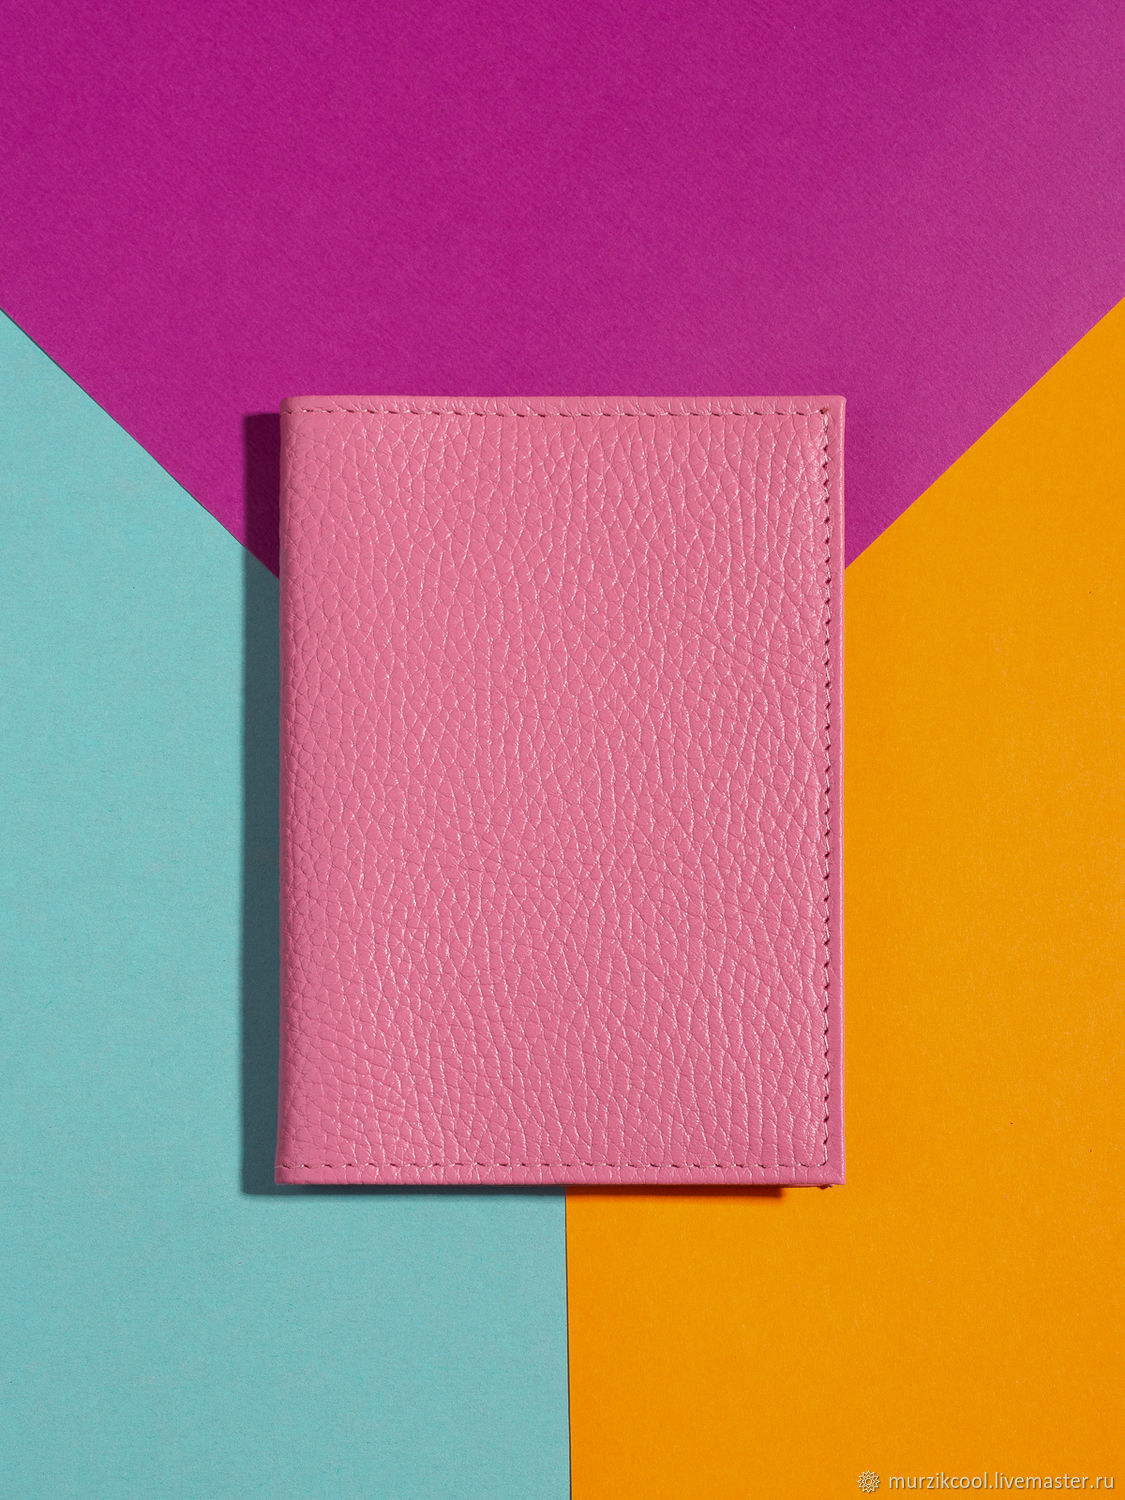 Passport cover 'Classic' Bright pink, Cover, Moscow,  Фото №1